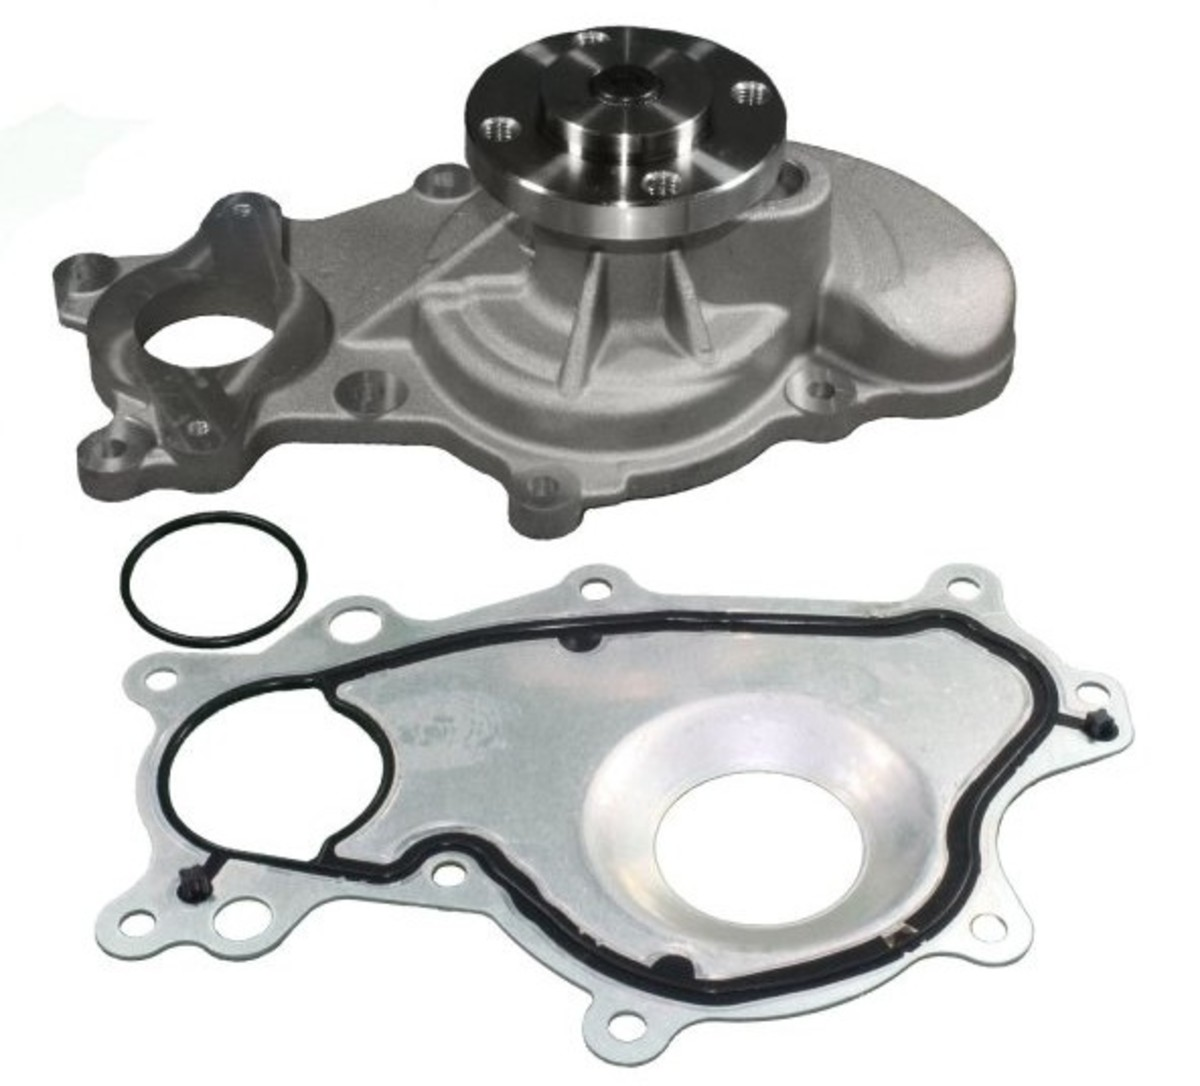 Ford Mustang V6 water pump and gasket